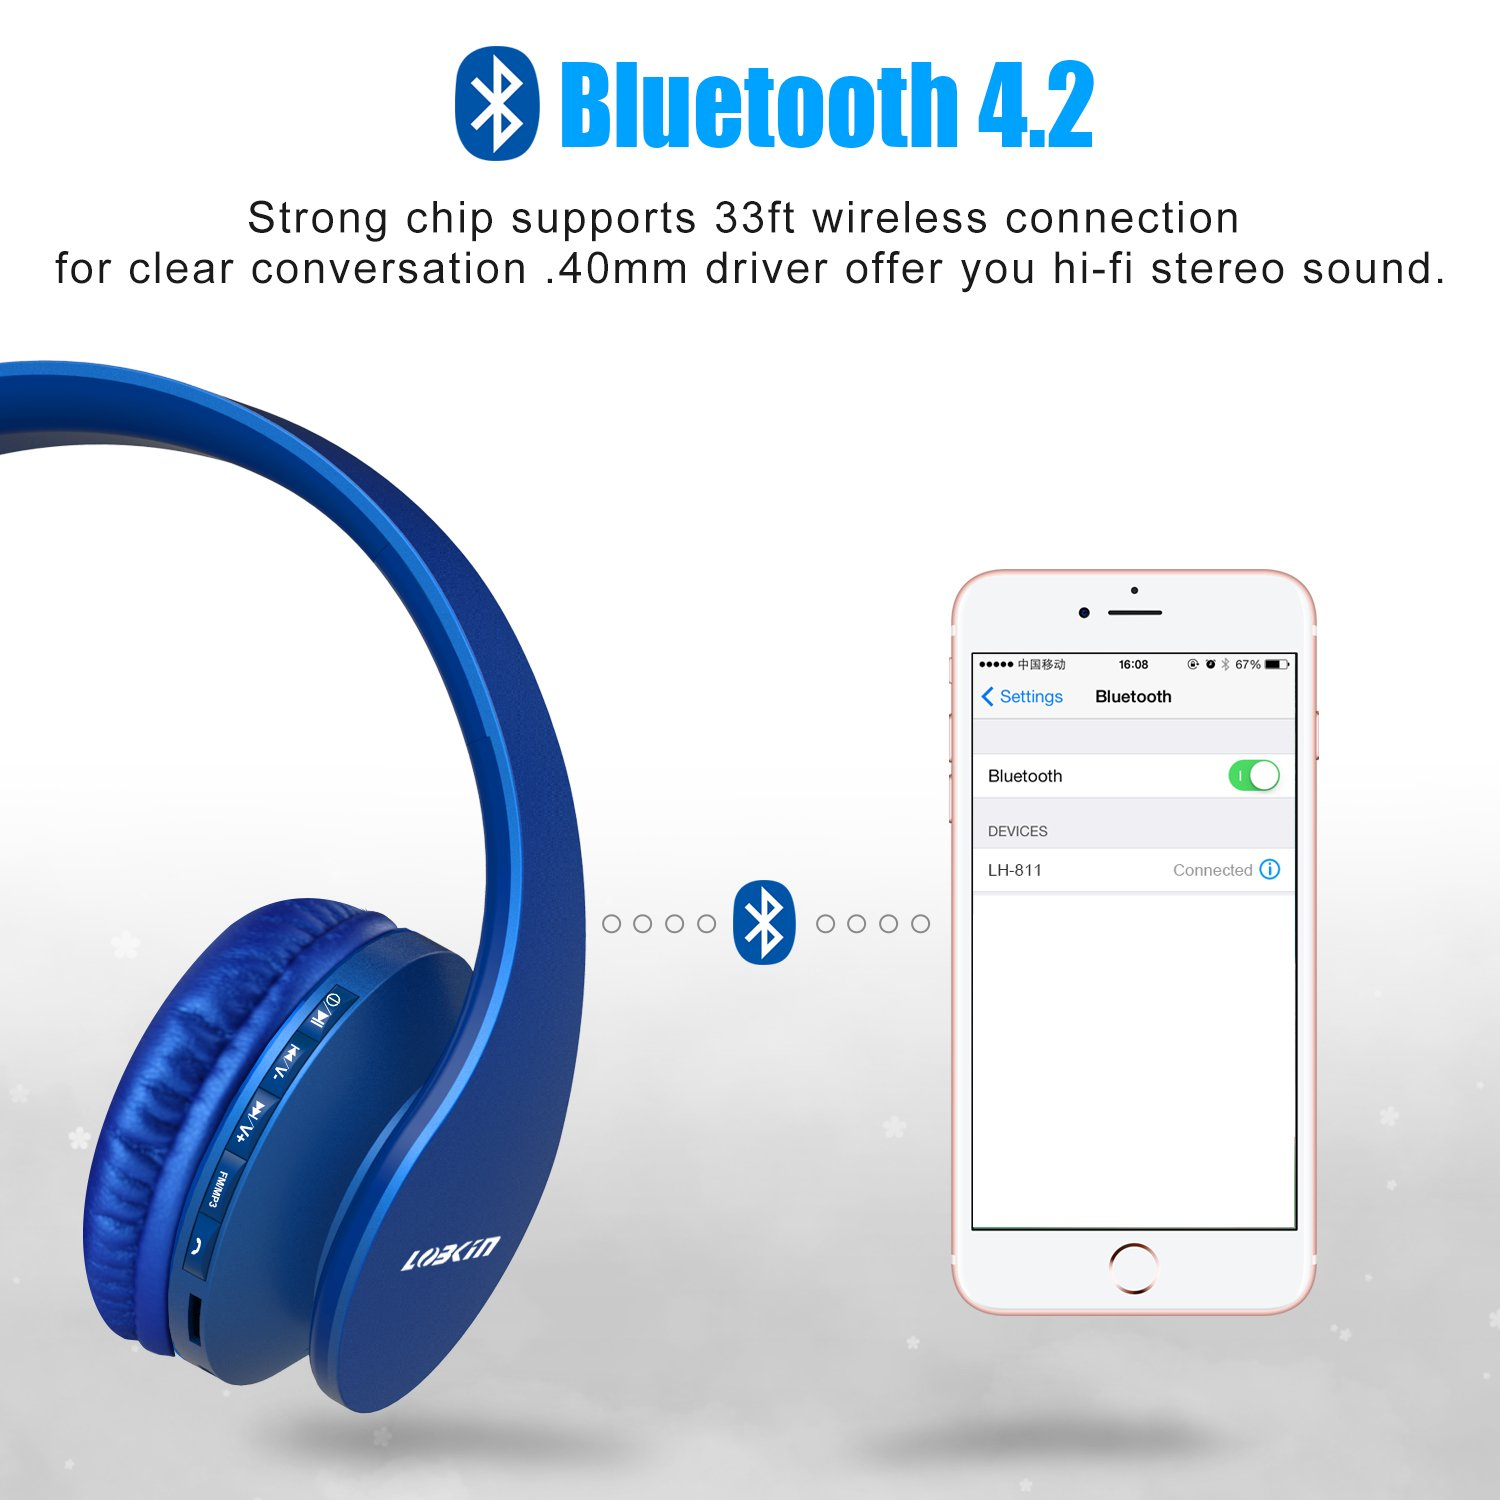 Bluetooth Kopfhörer LOBKIN Over Ear Wireless Bluetooth Kopfhörer Faltbar Kabellose on Ear Ohrhörer Headset mit Mikrofon TF/Micro SD/FM Radio (Dunkelblau)